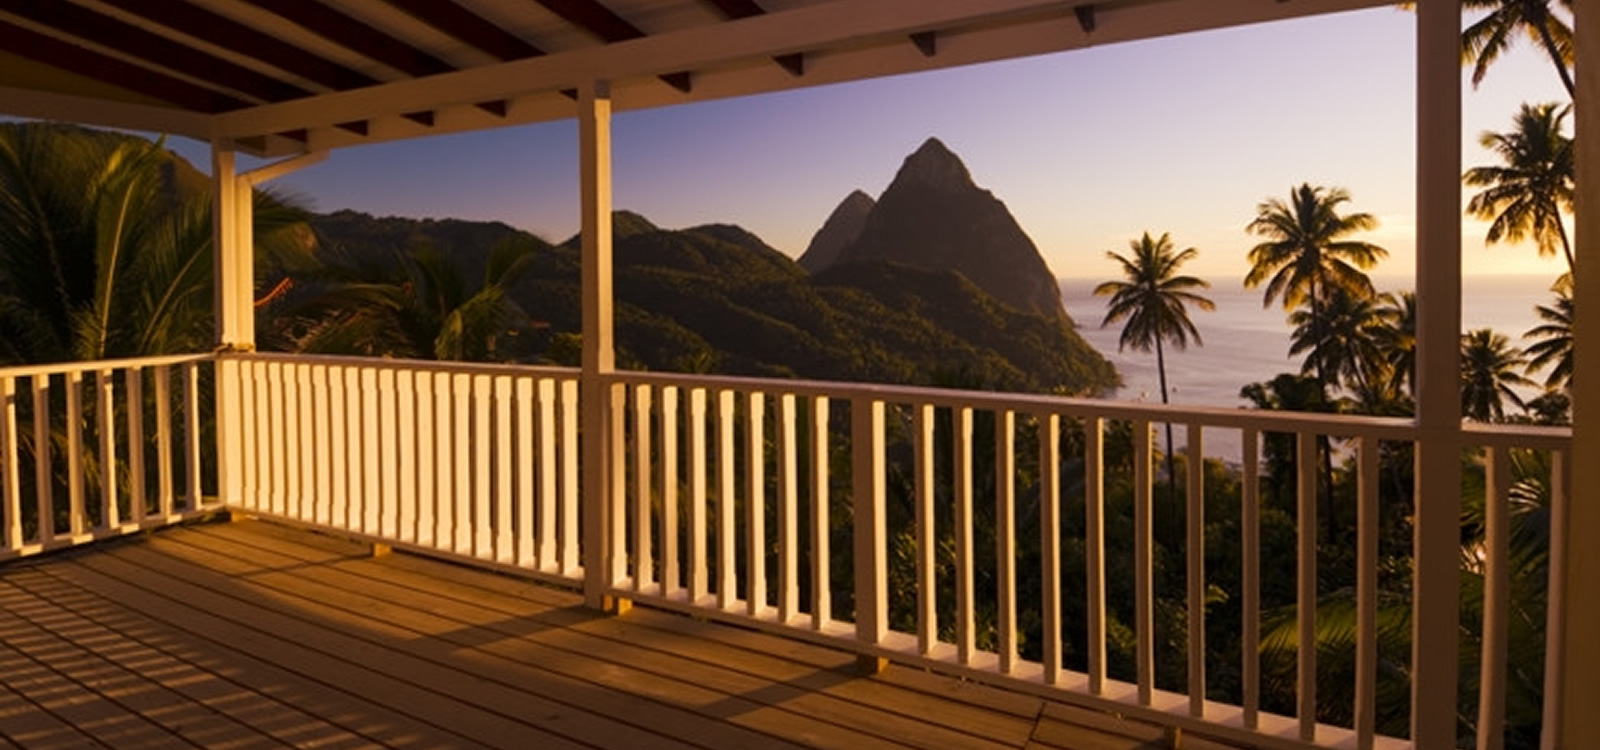 Boutique hotel for sale soufriere st lucia 15 7th heaven for Boutique hotel for sale